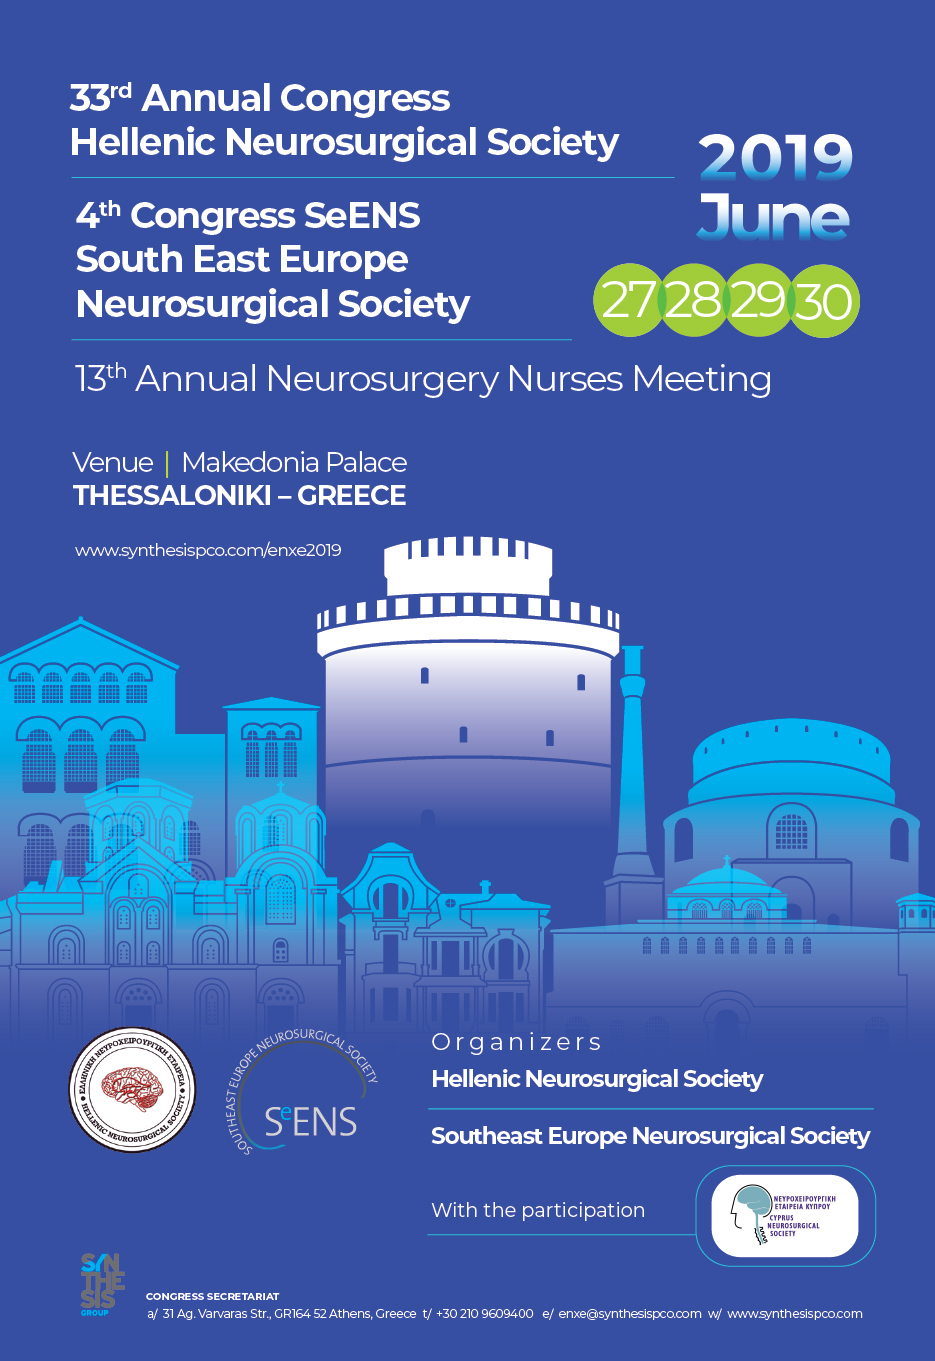 33rd Annual Congress of the Hellenic Neurosurgical Society & 4th Congress of Seens Southeast Europe Neurosurgical Society & 13th Annual Neurosurgery Nurses Meeting